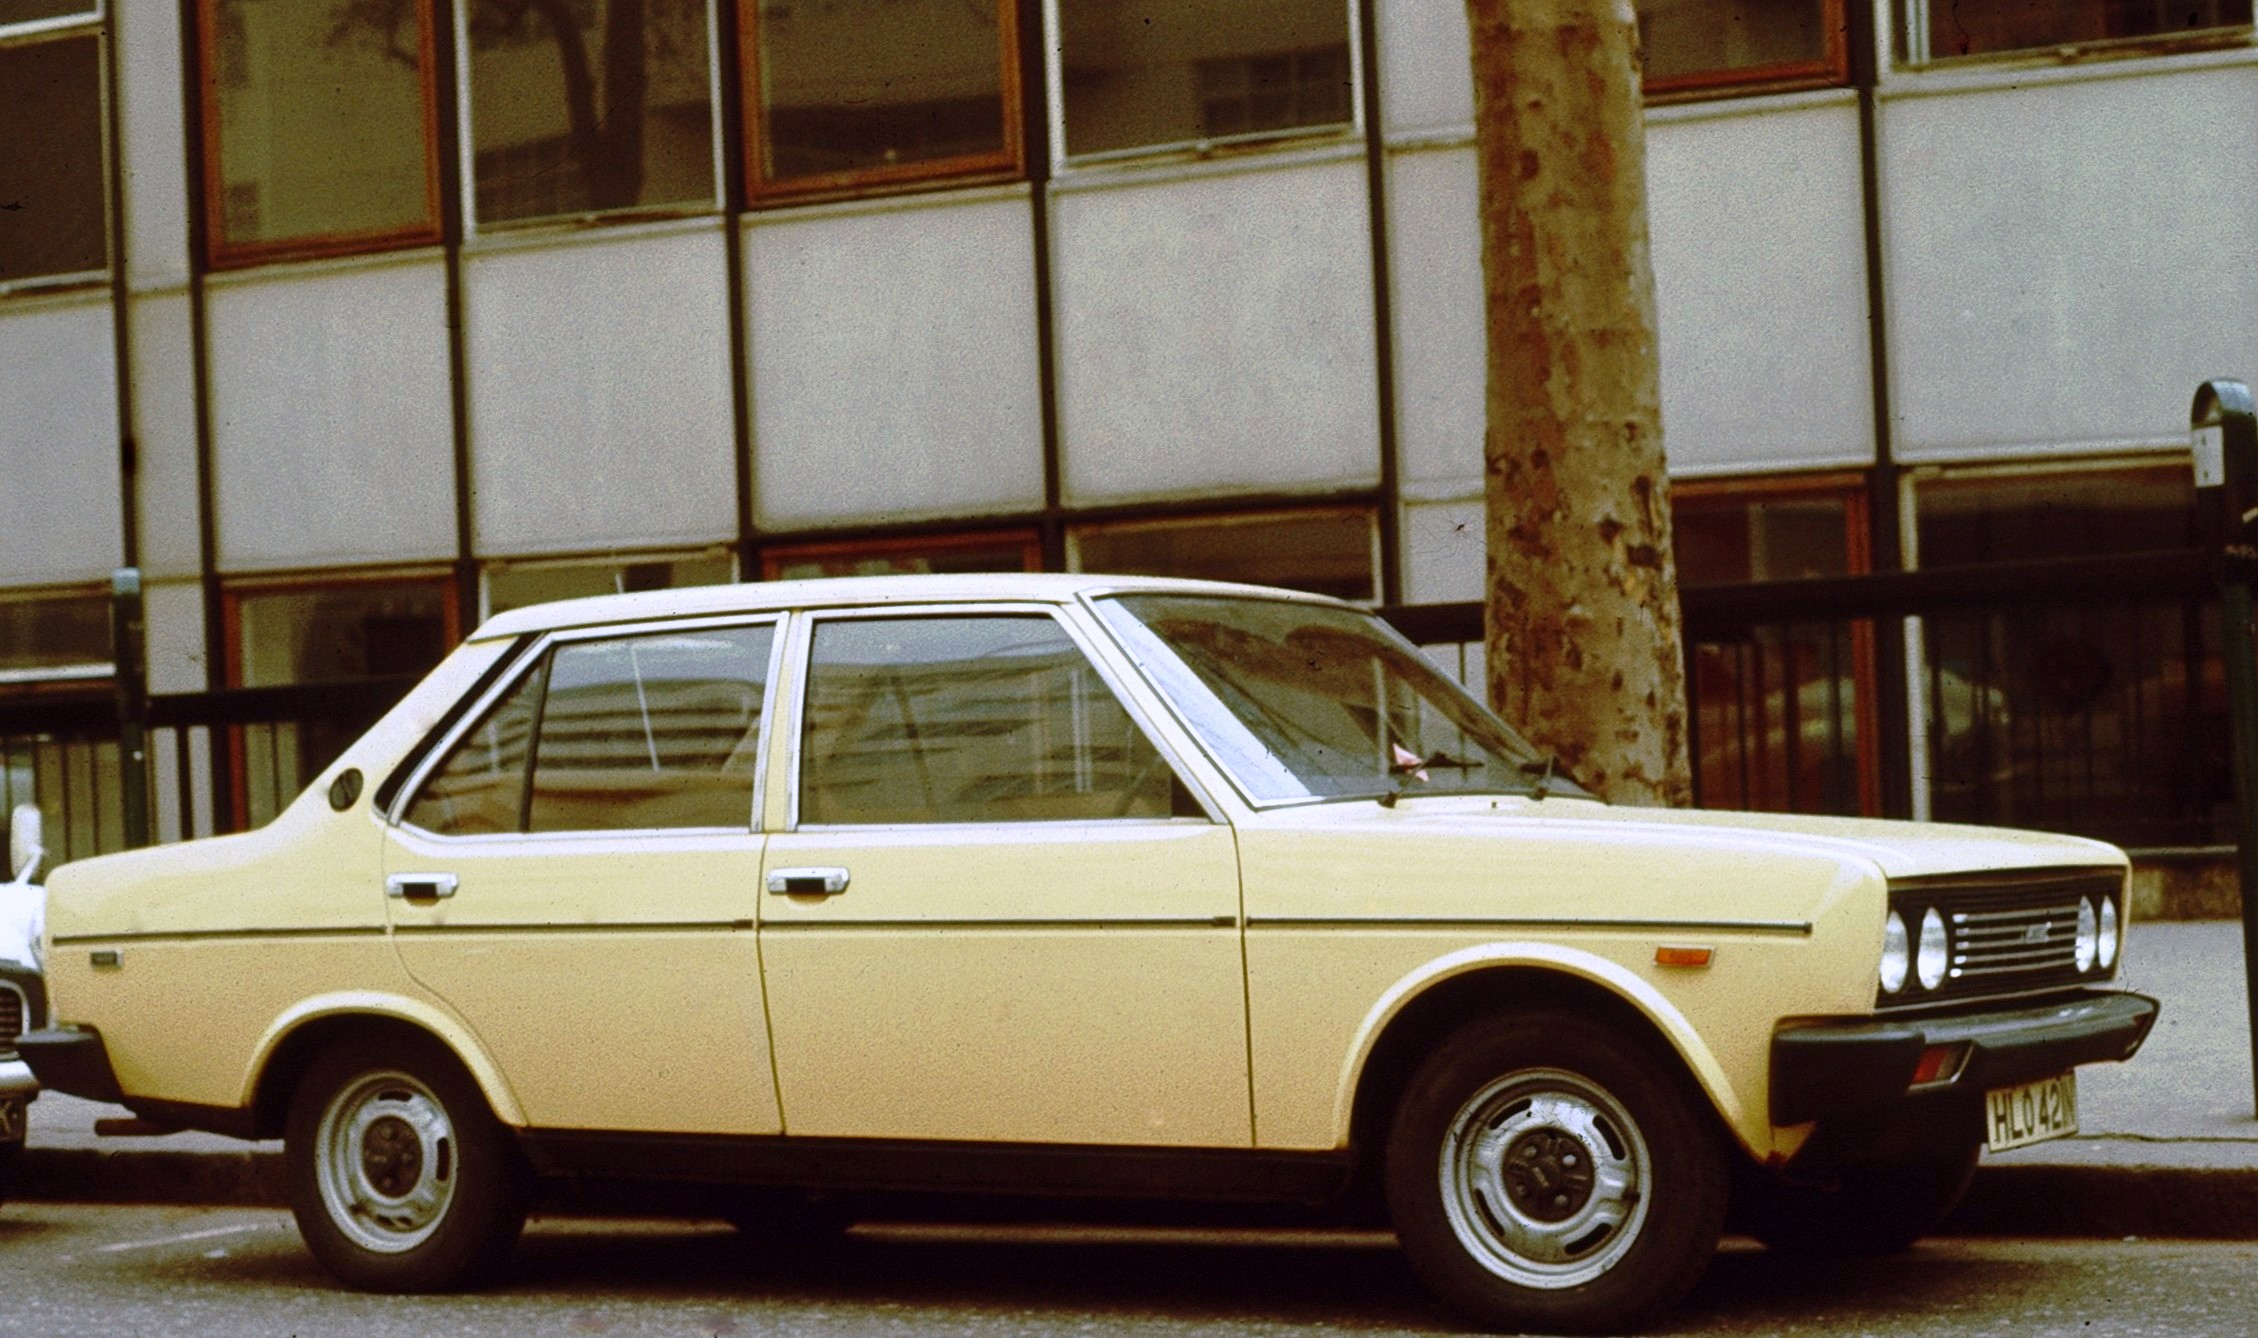 File:Fiat 131 early one in England.jpg